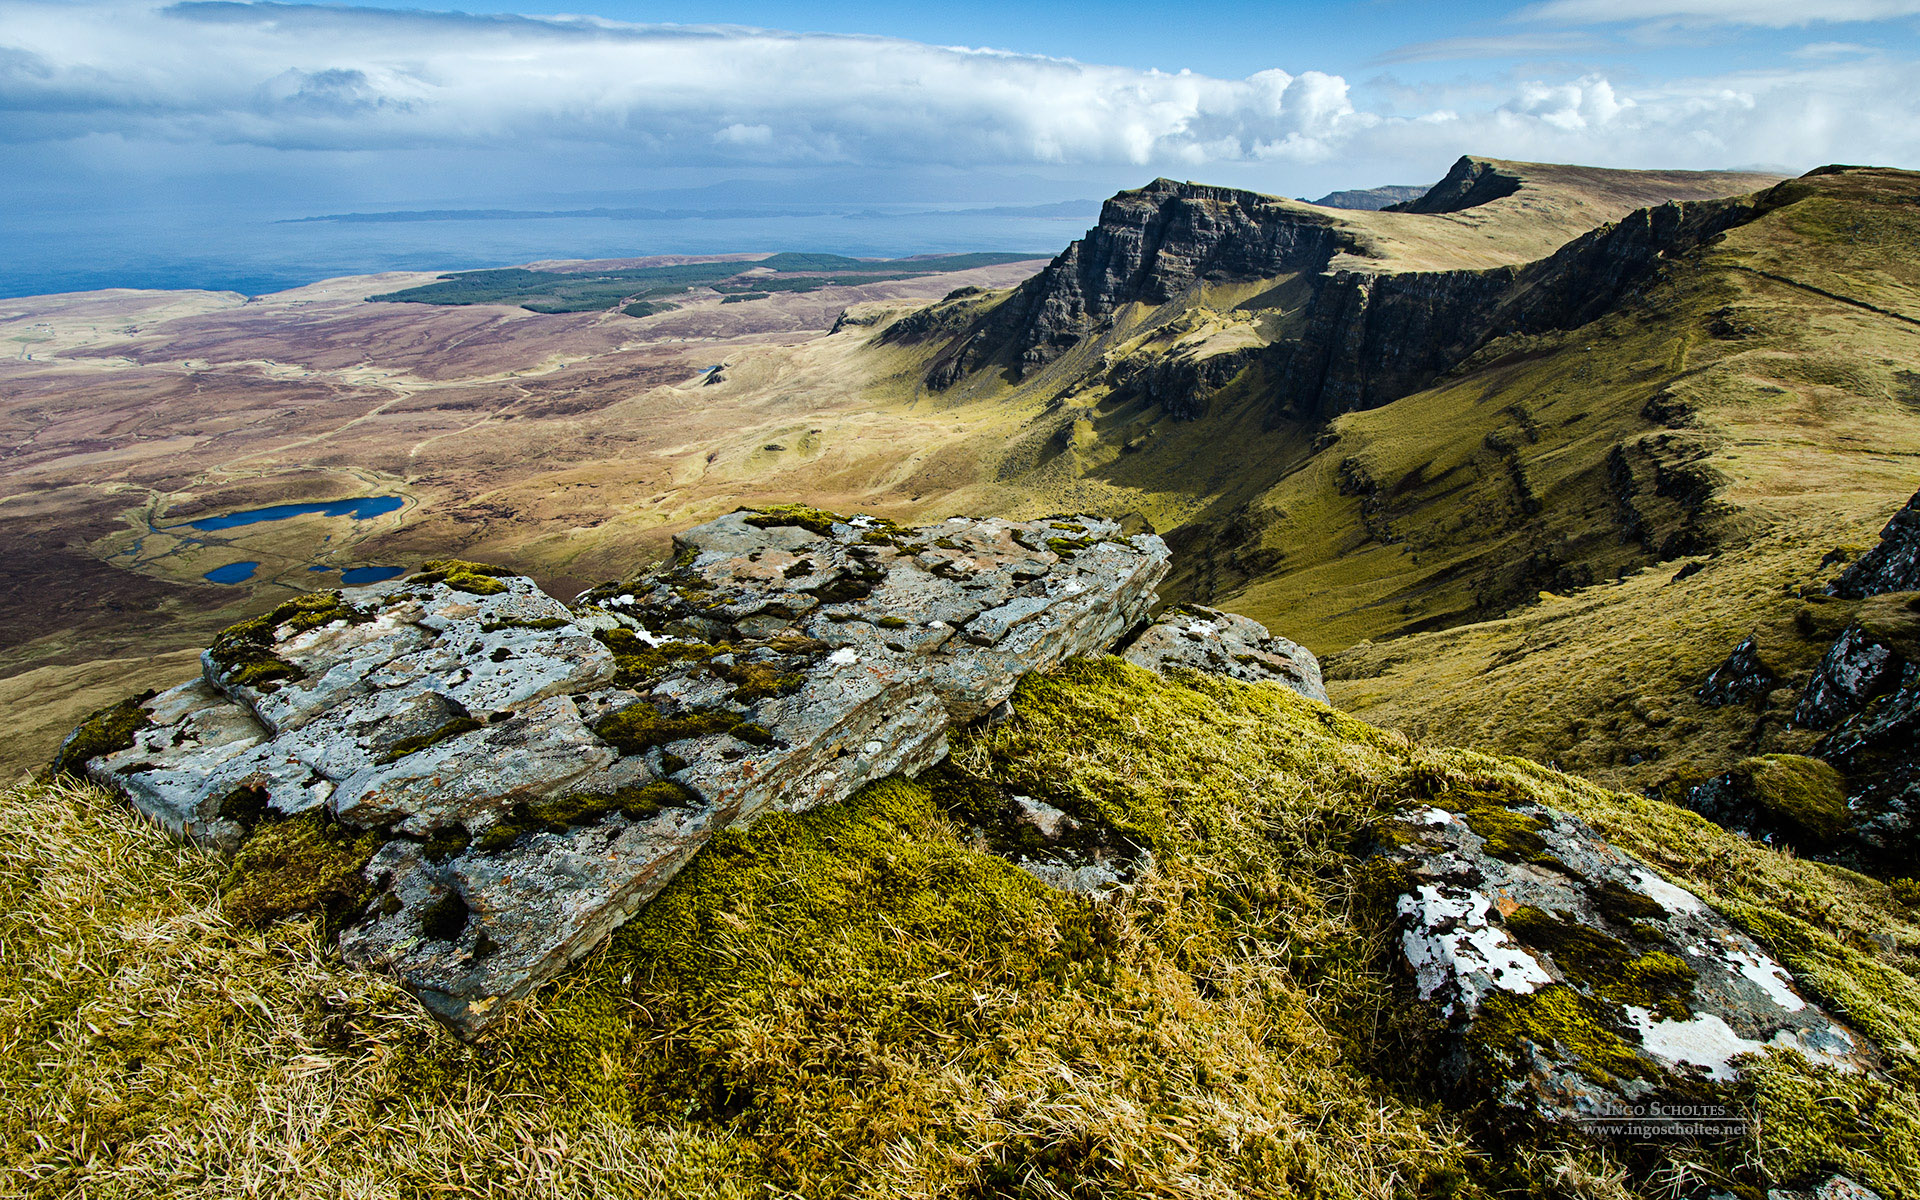 Trotternish Ridge, Isle of Skye, Scotland, U.K.